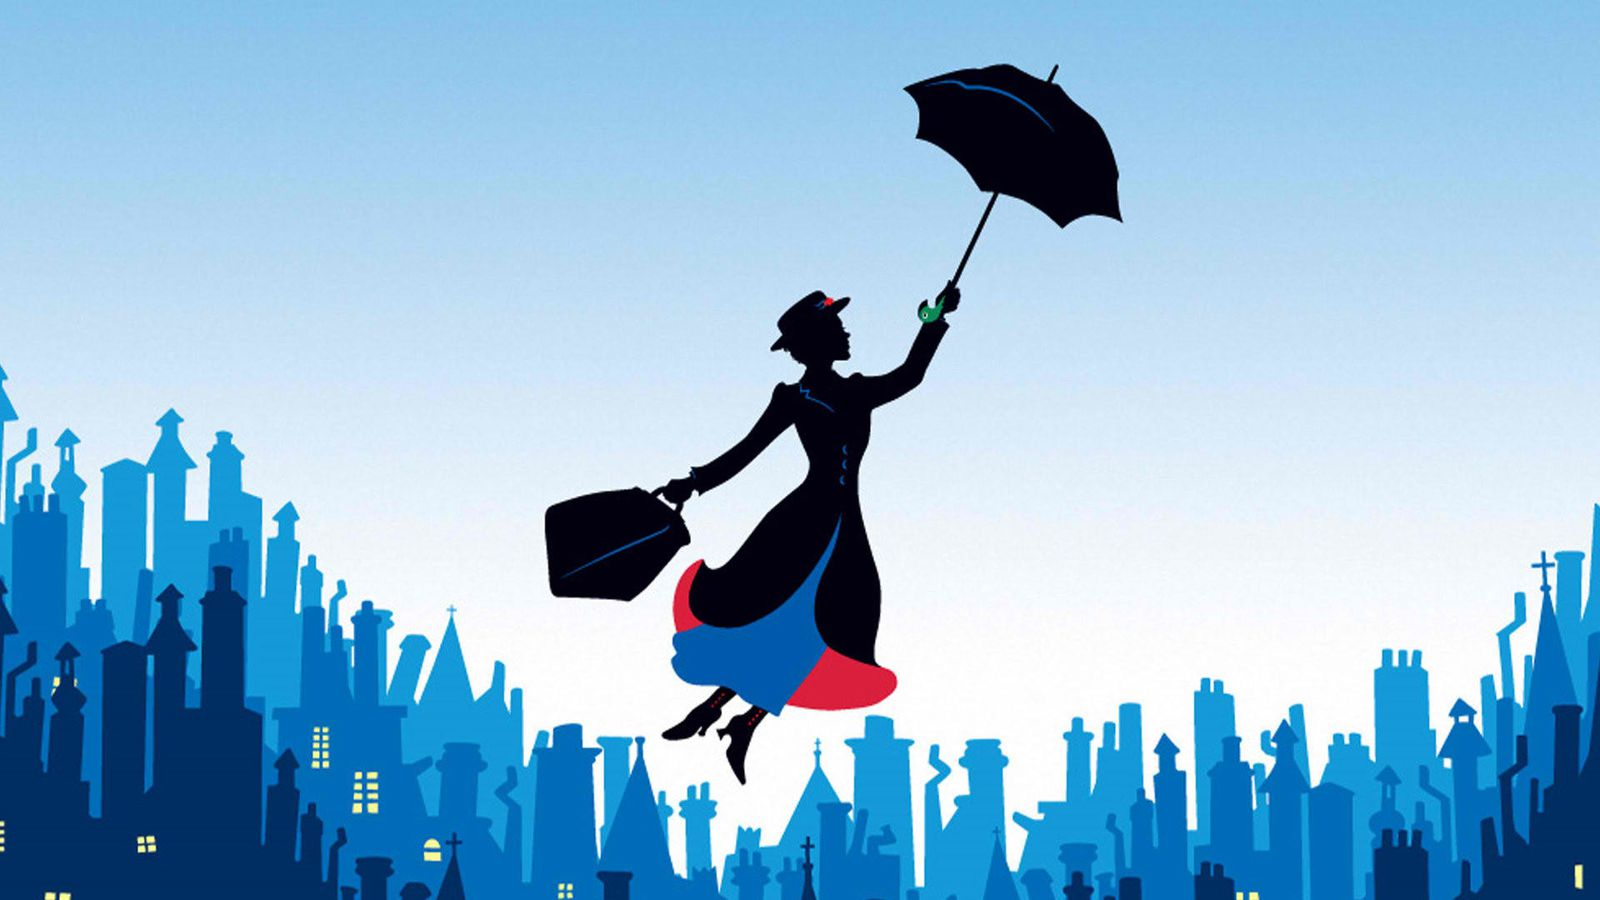 Chem Cheminée Paroles Paroles Des Chansons Disney Mary Poppins